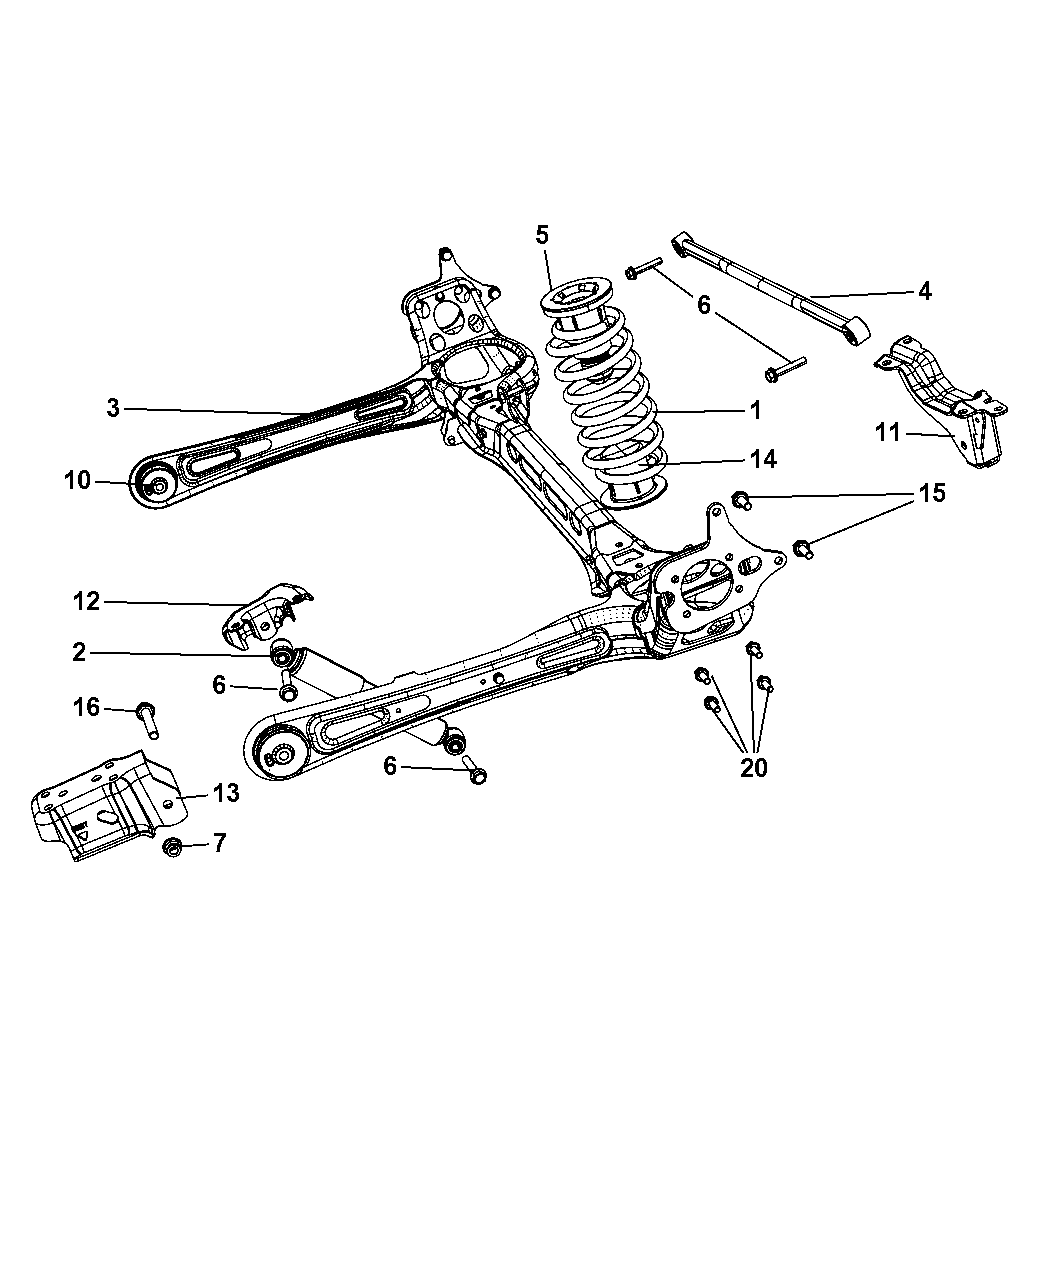 2009 dodge grand caravan suspension - rear